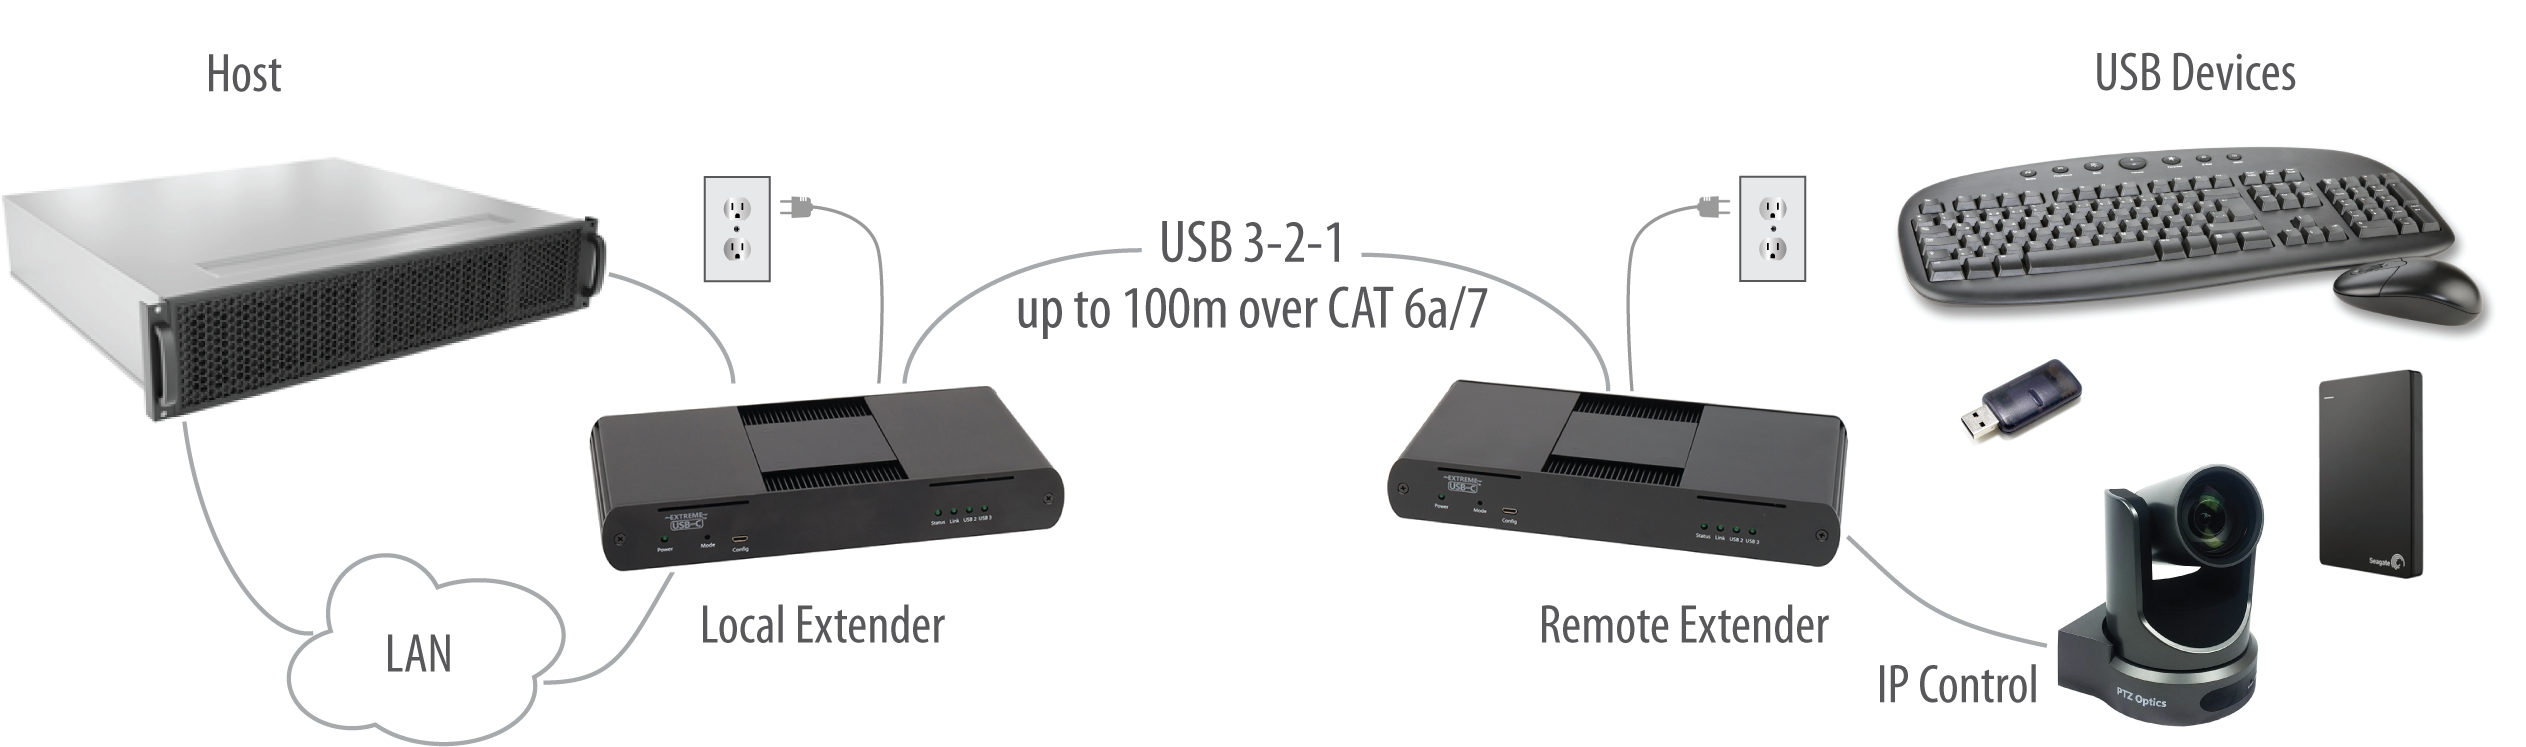 USB 3-2-1 Raven 3104 Turnkey PCBA (100m CAT 6a/7 Point-to-Point) Extender System Application Diagram shown in Icron enclosures